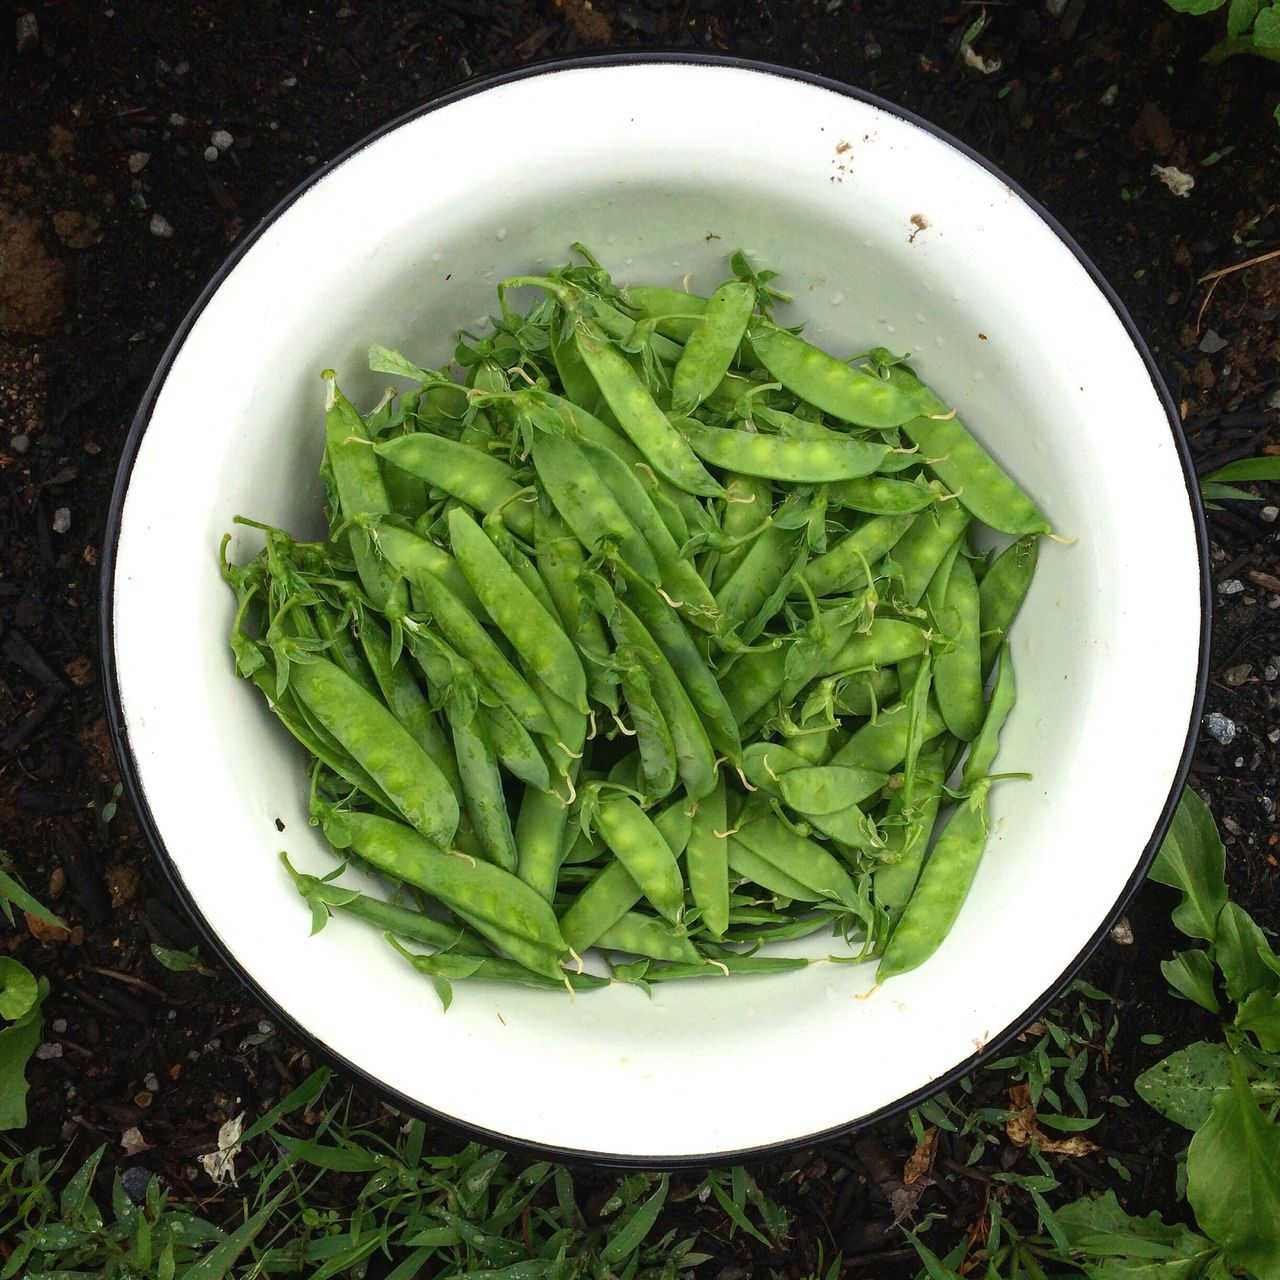 Close-up of peas in bowl